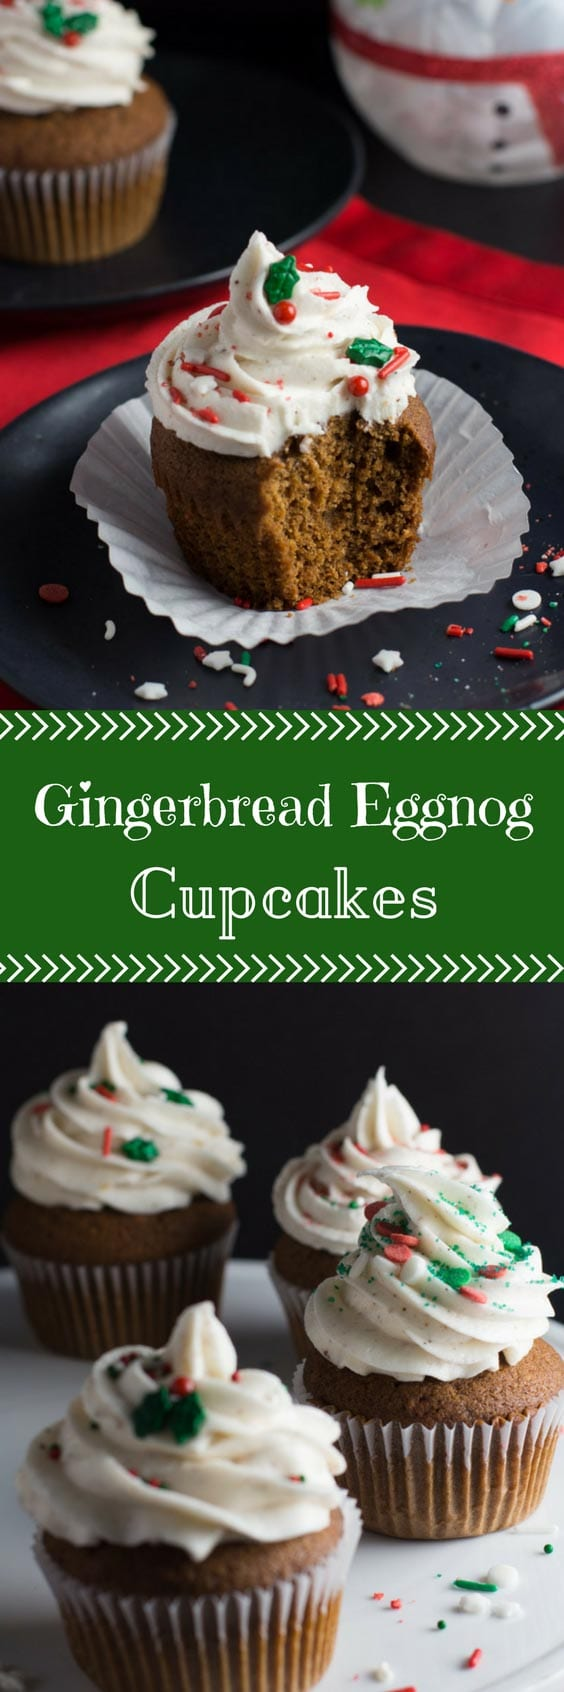 These Gingerbread Eggnog Cupcakes feature a warmly spiced cupcake, topped with a festive eggnog frosting. It's the perfect way to use up your leftover eggnog! #cupcakes #gingerbread #eggnog #dessert #christmas #christmasbakes | bakedujour.com